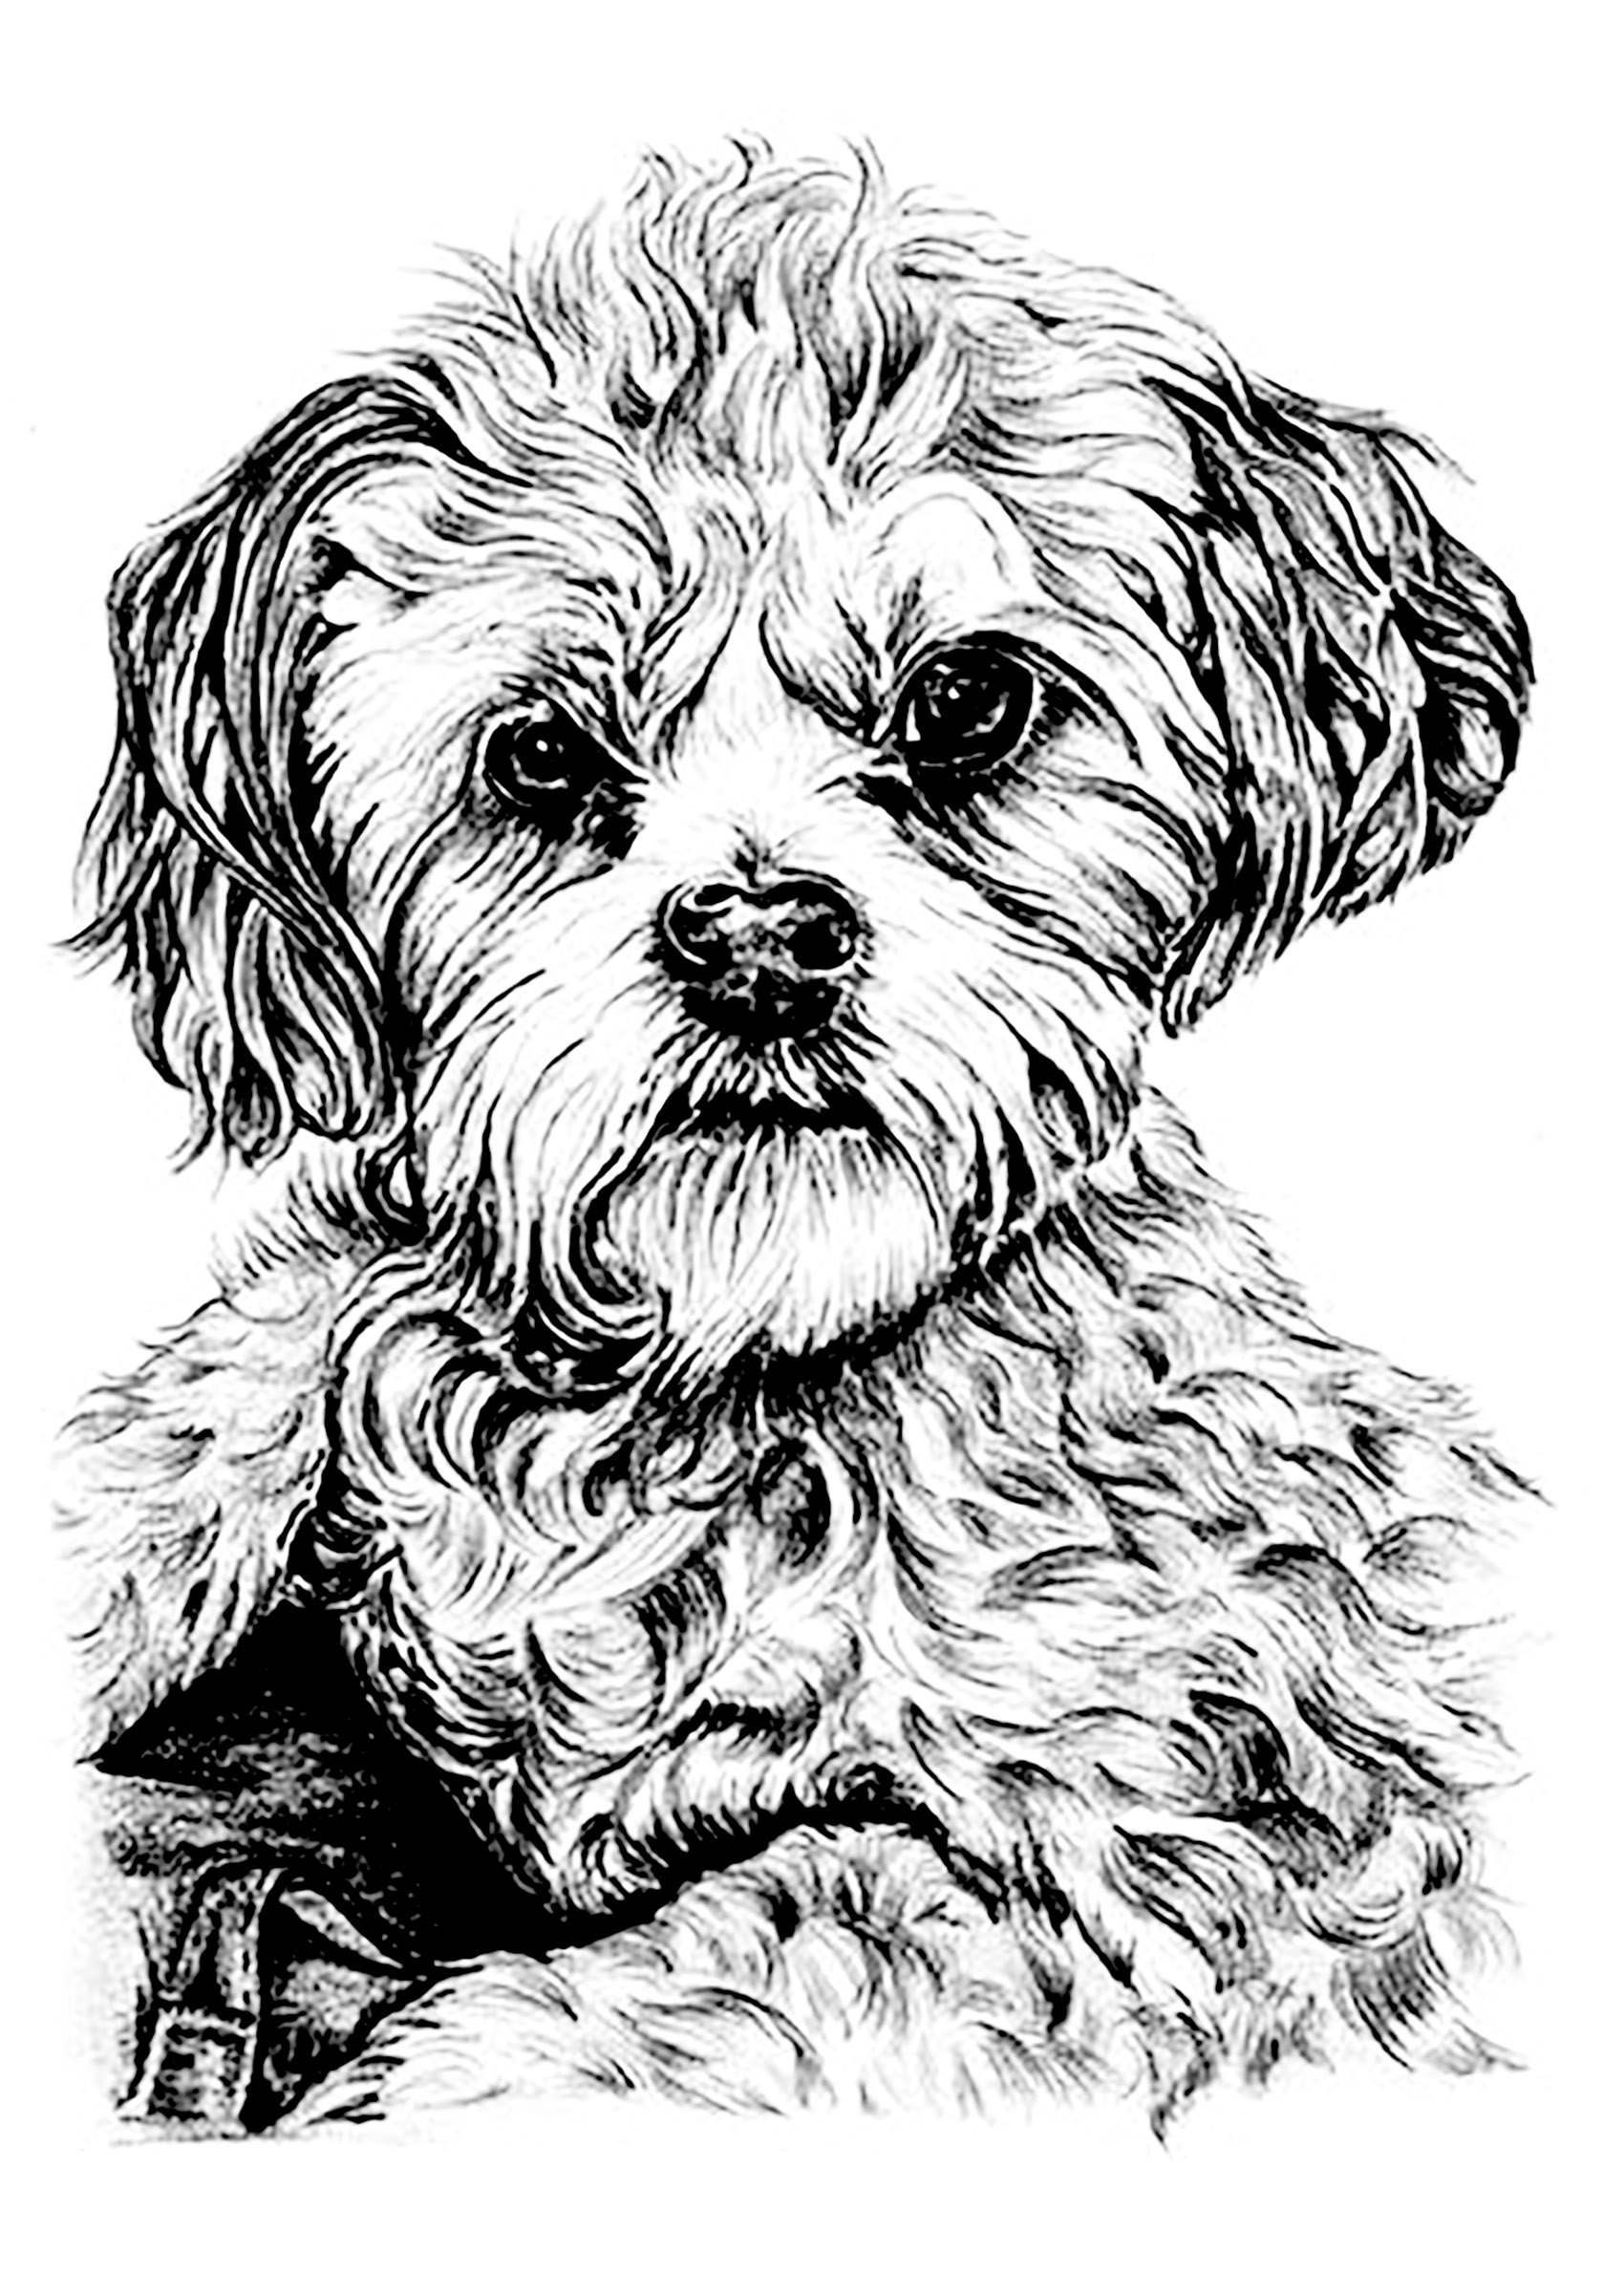 Dog for kids - Dogs Kids Coloring Pages